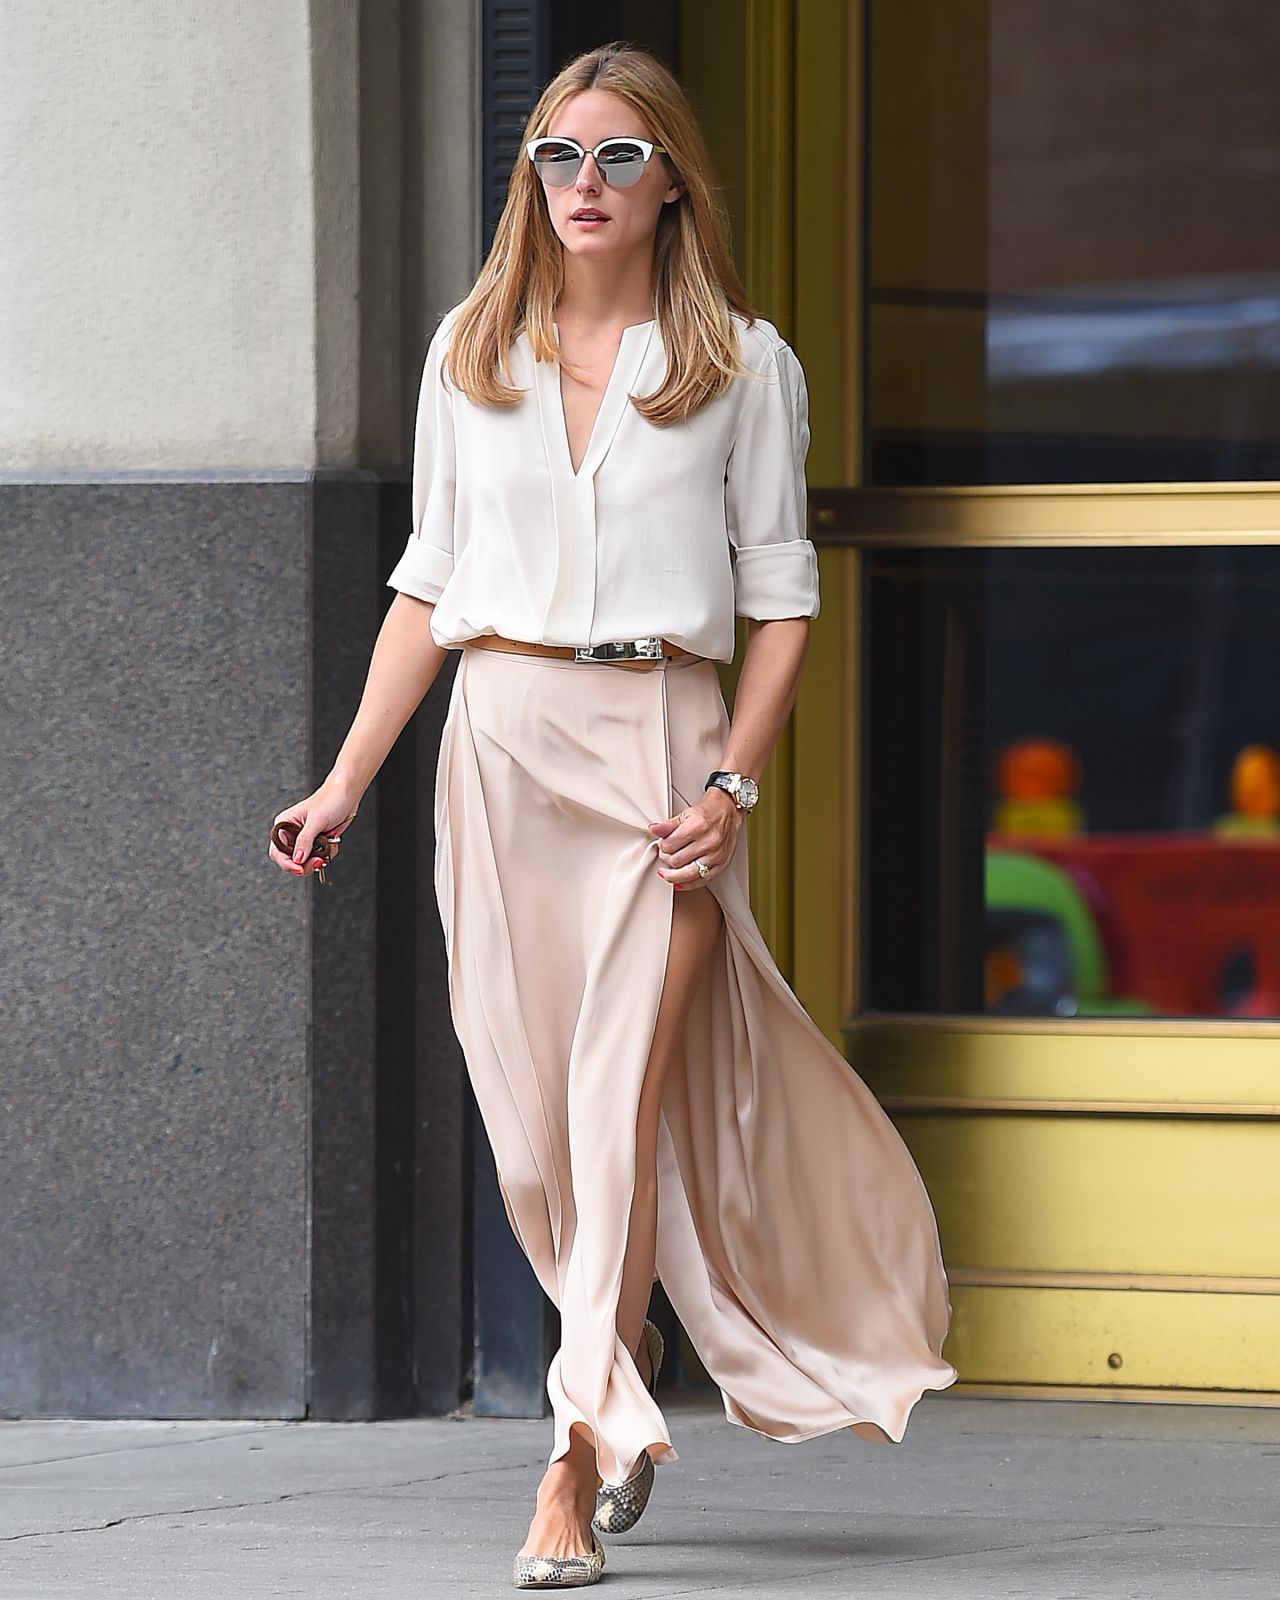 Olivia Palermo Out And About In New York 07 21 2015